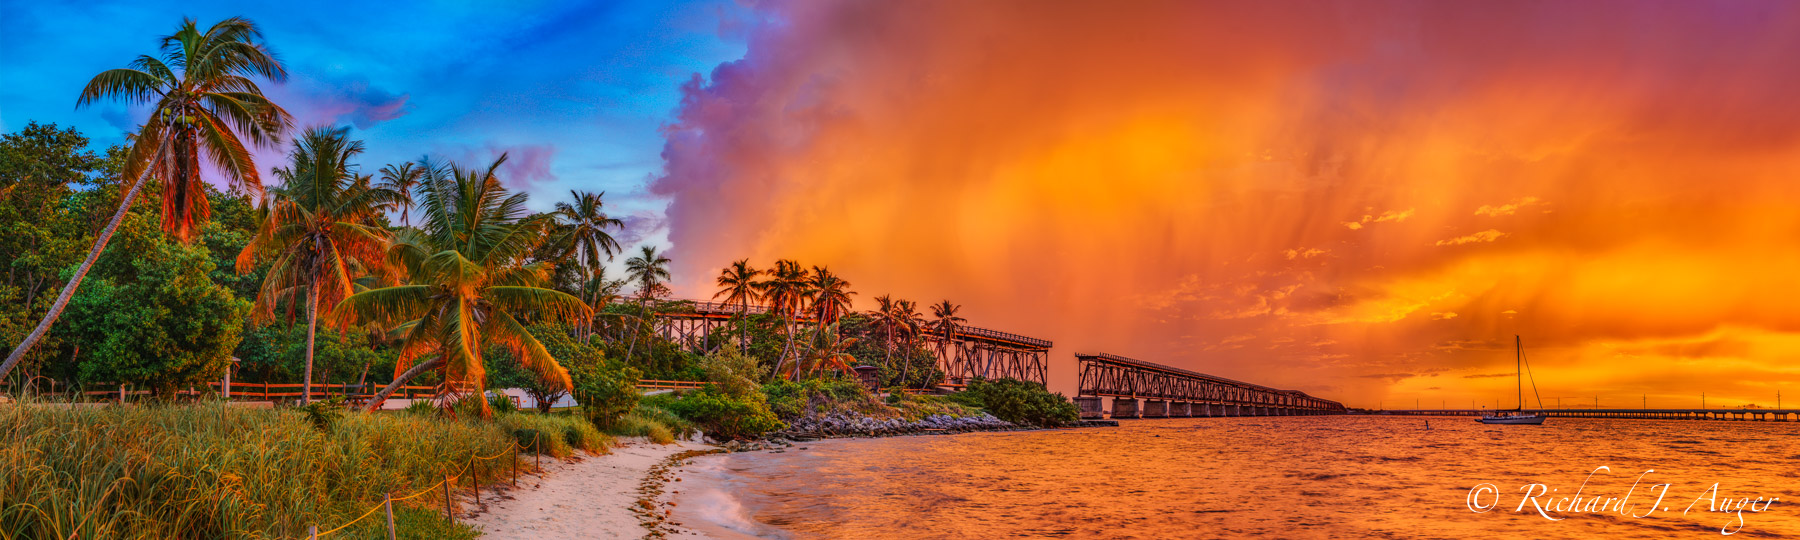 Bahia Honda Bridge, Florida Keys, State Park, Photograph, Landscape, Sunset, Ocean